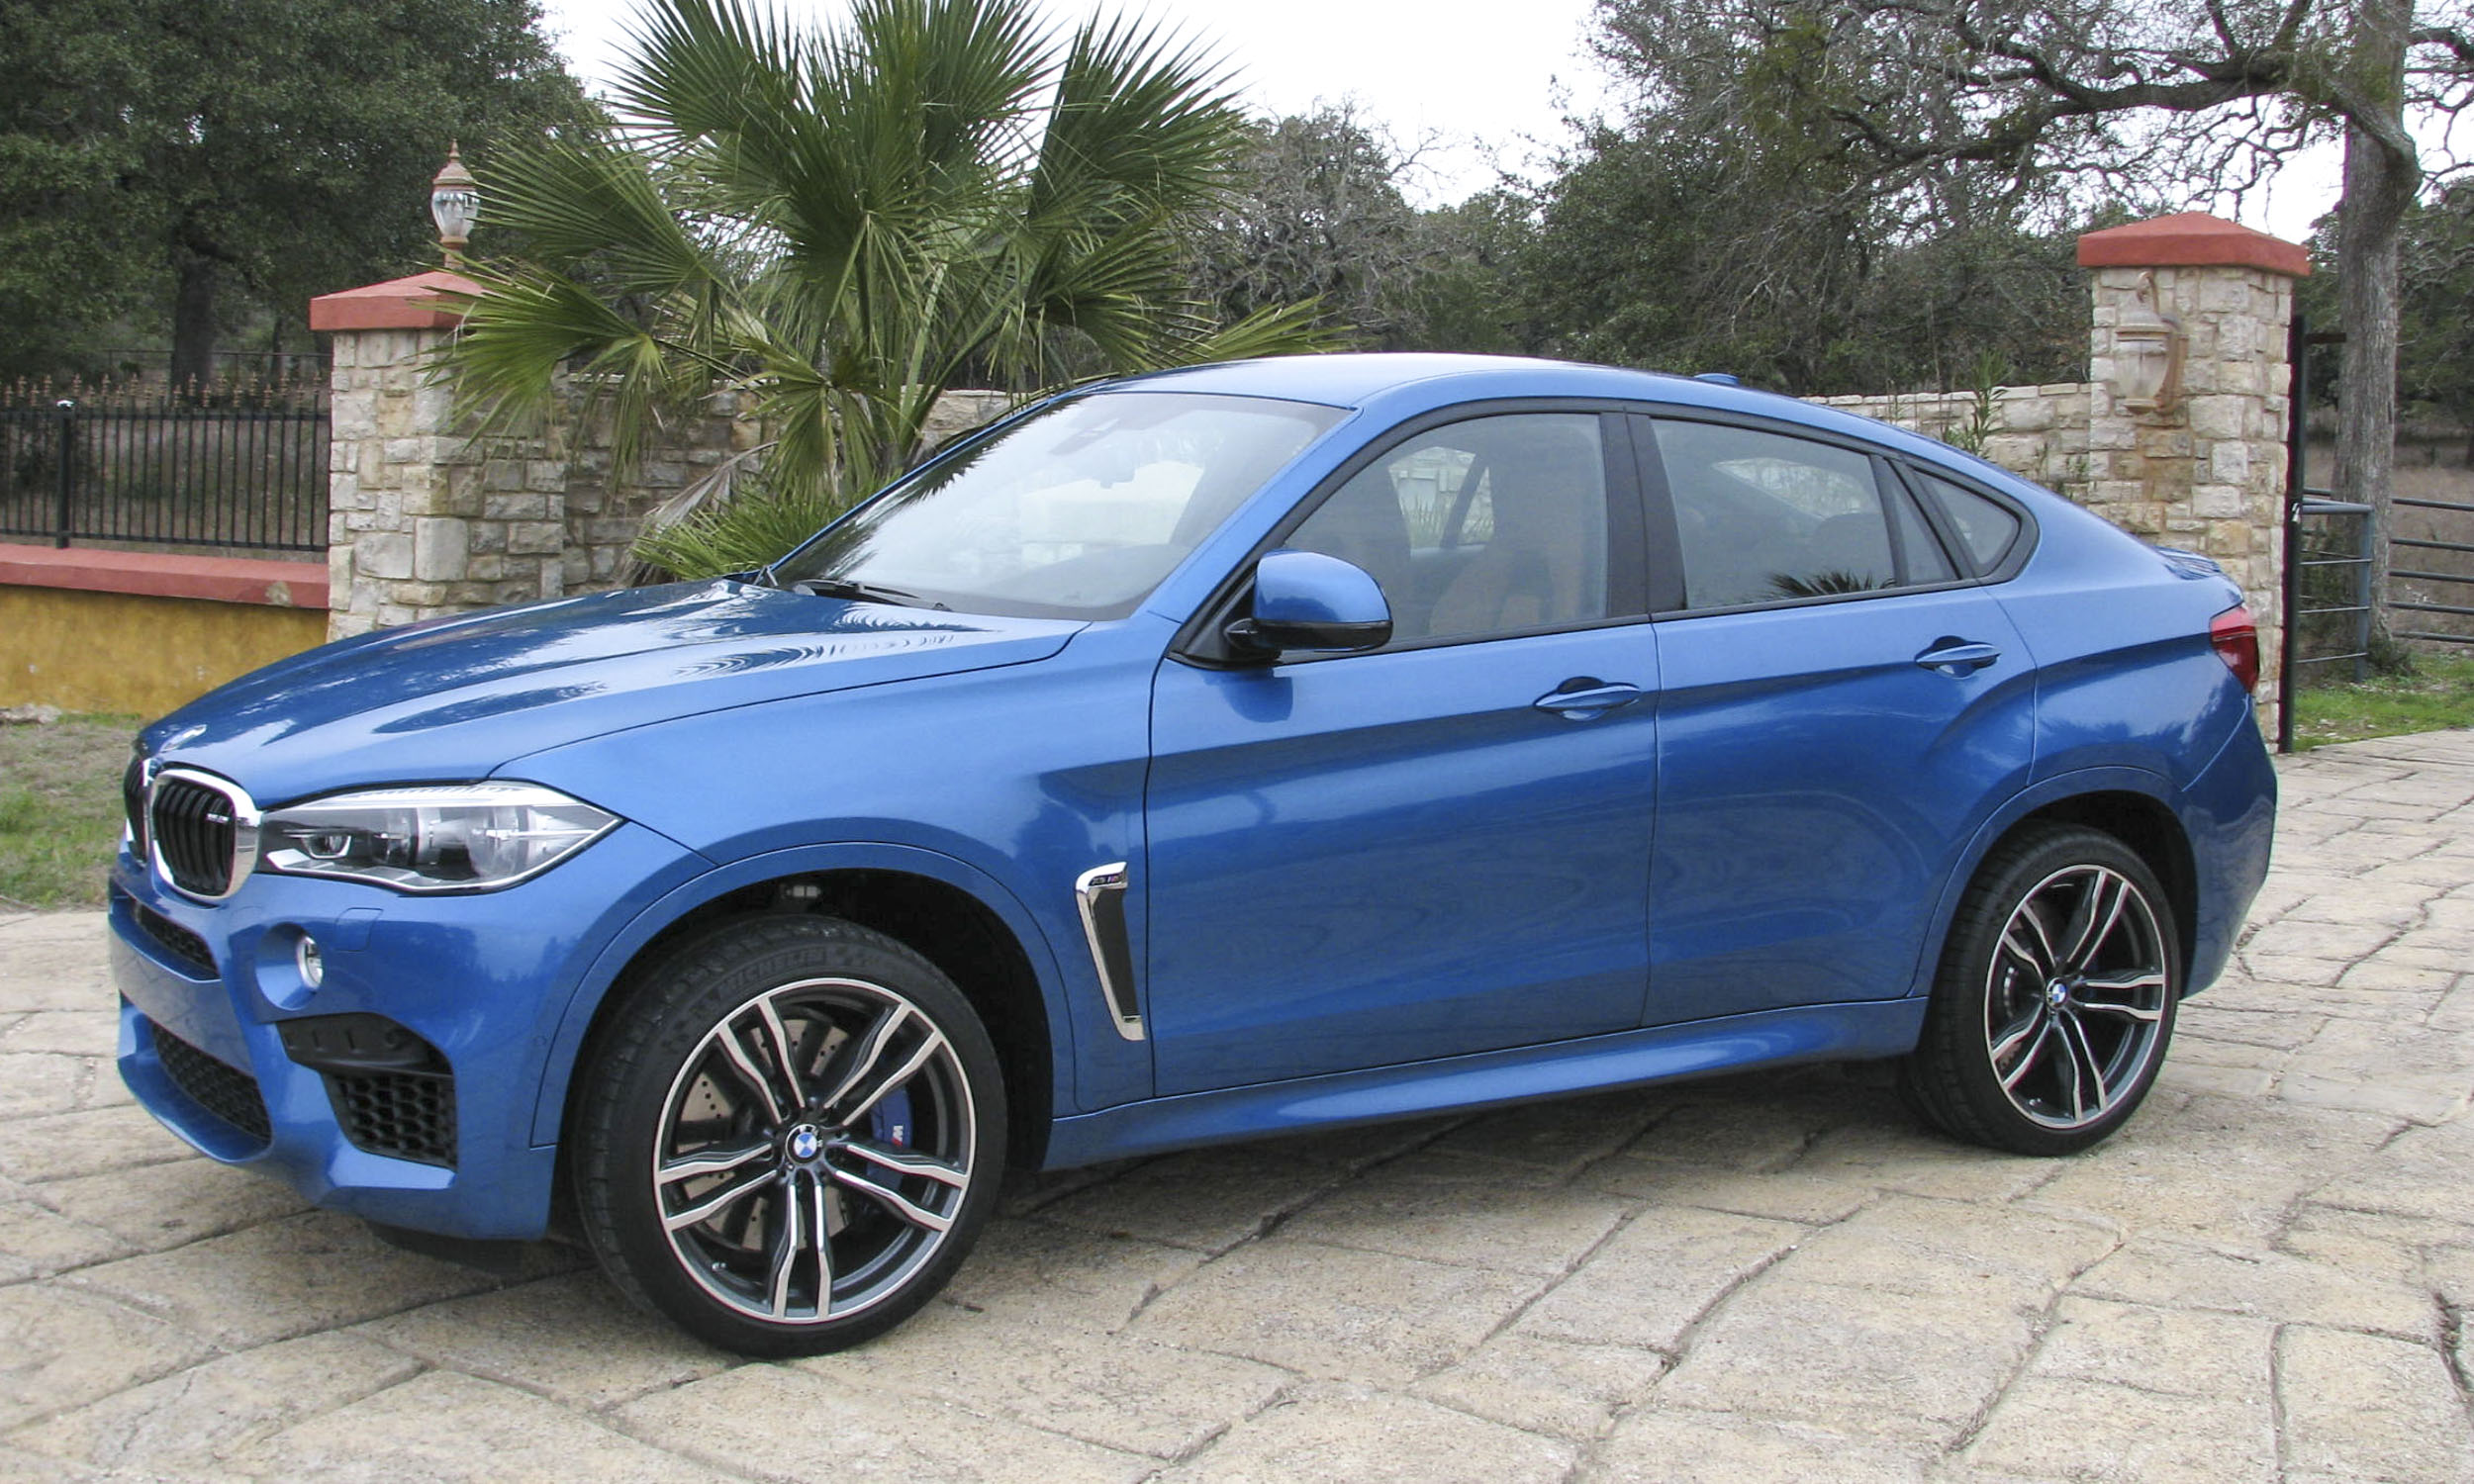 x6 pack m g power unveils bmw x6 m typhoon with 750 hp. Black Bedroom Furniture Sets. Home Design Ideas